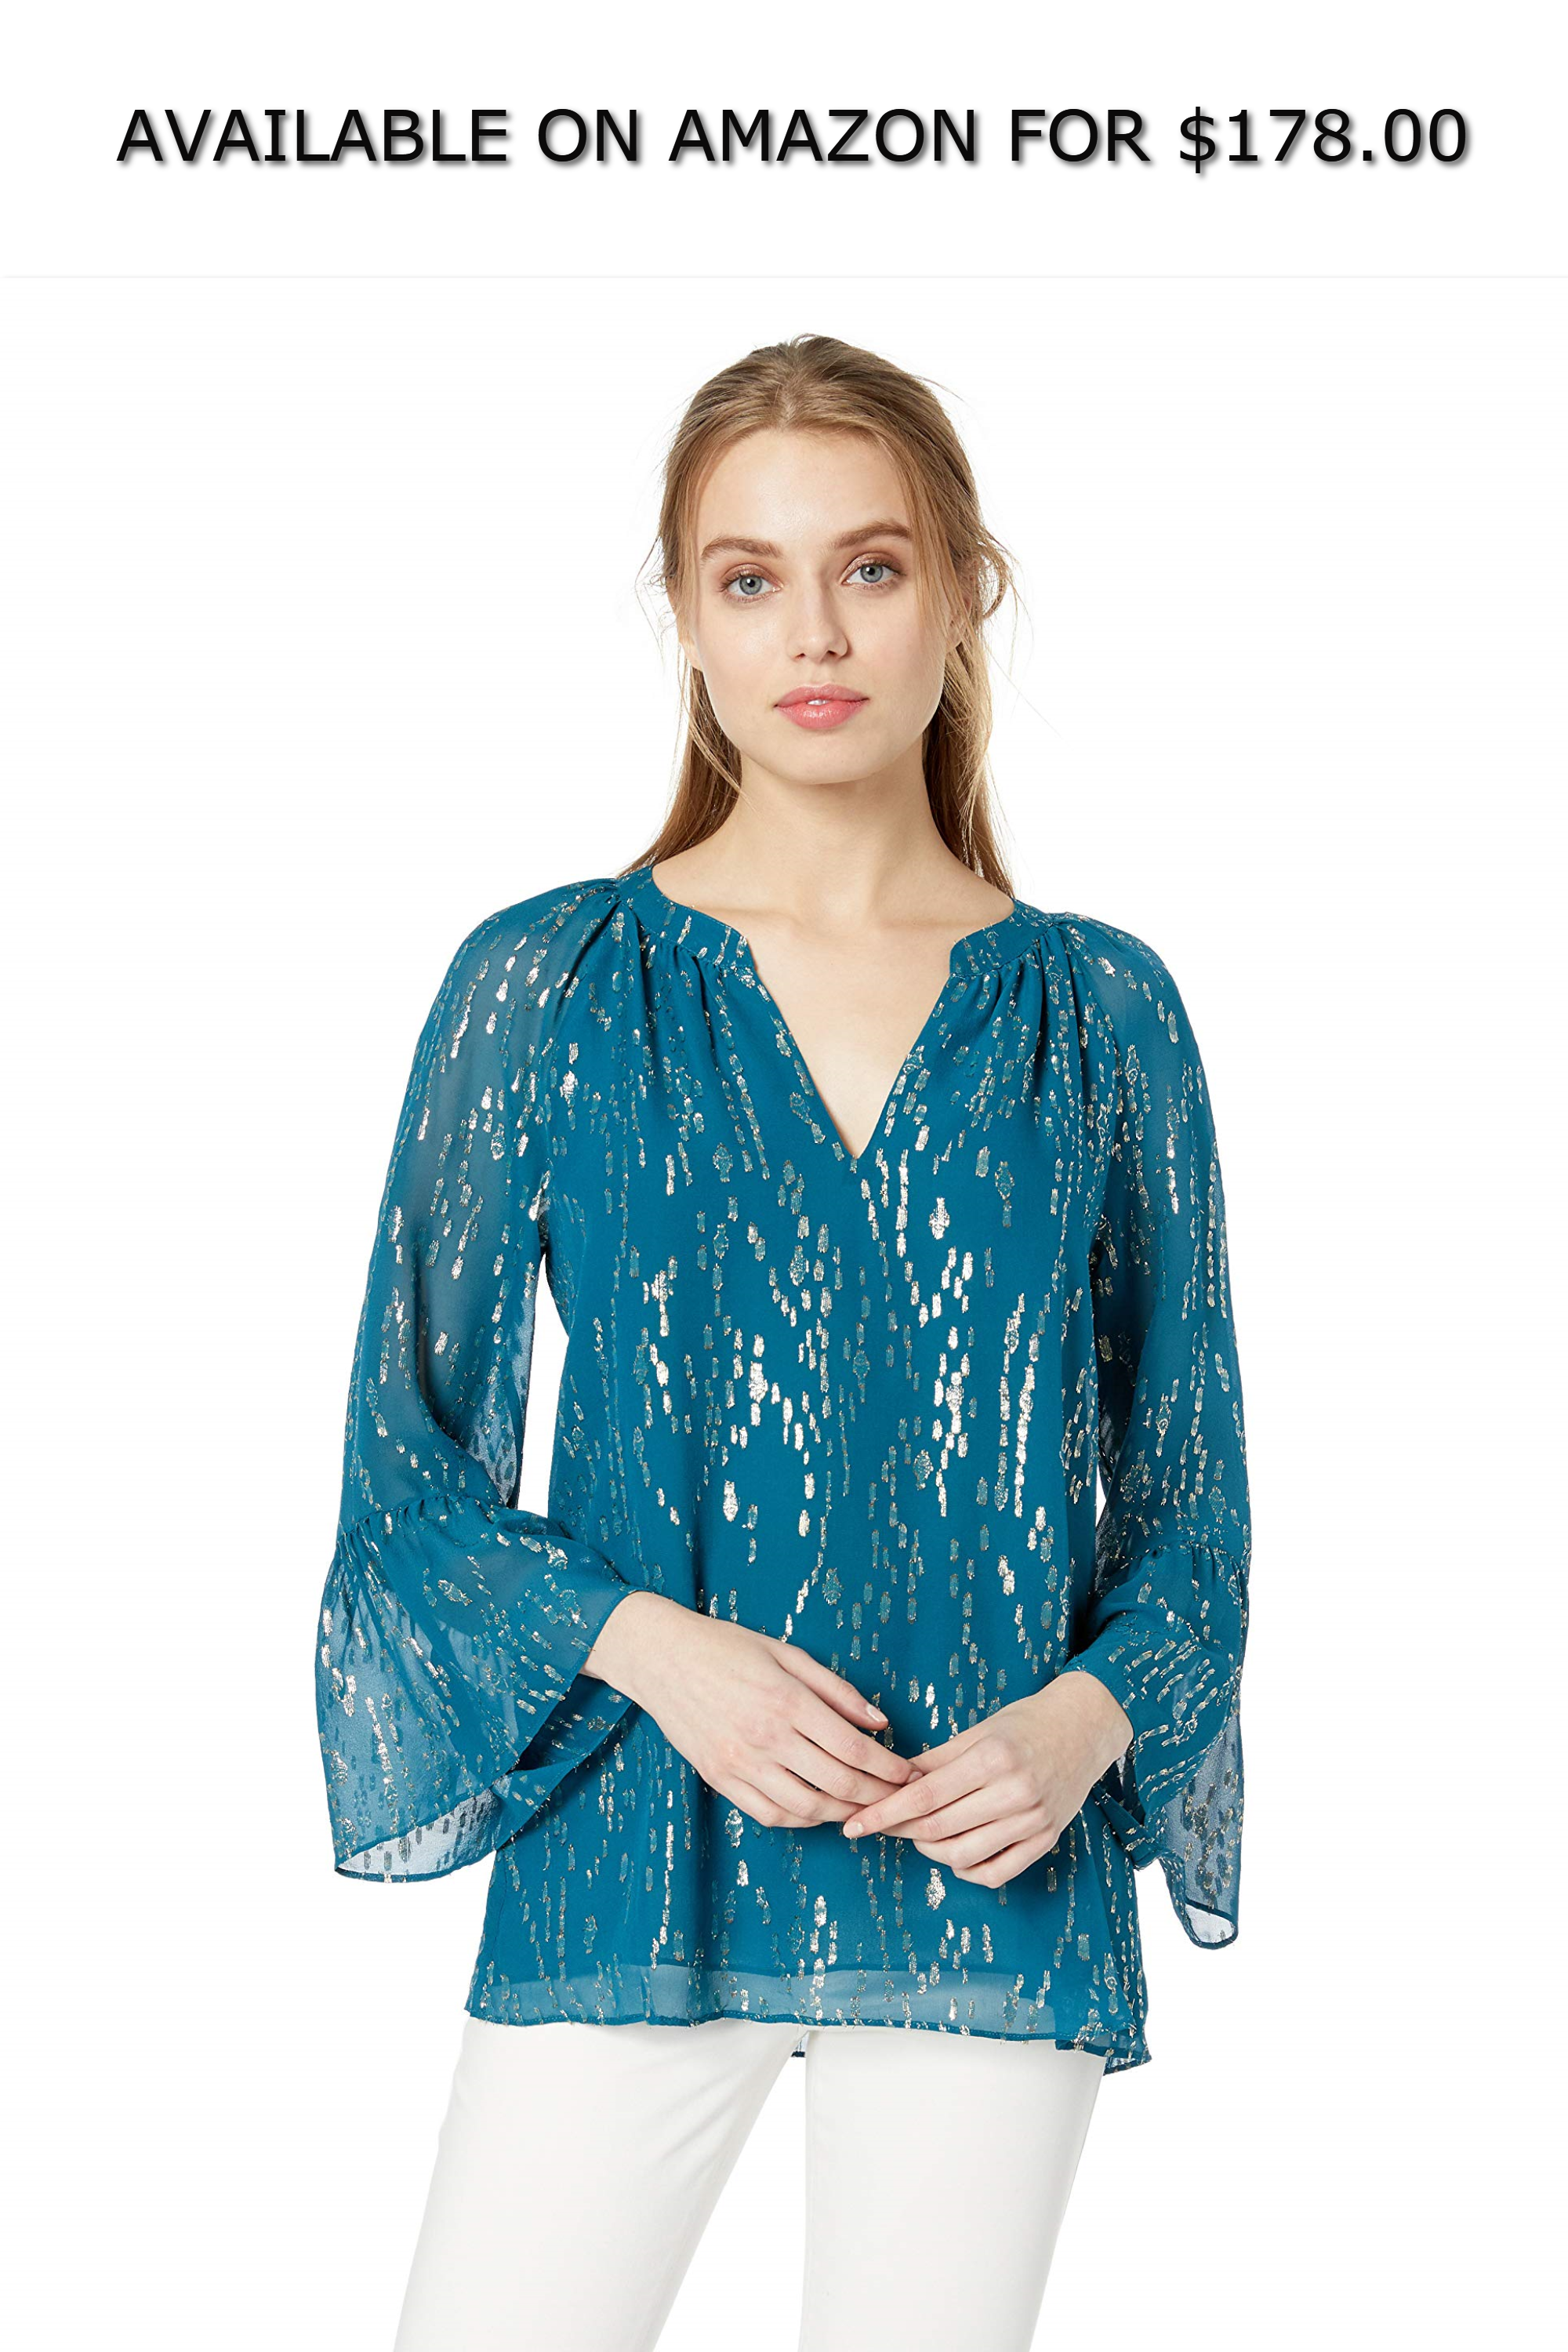 Lilly Pulitzer Women S Matilda Top Available On Amazon For